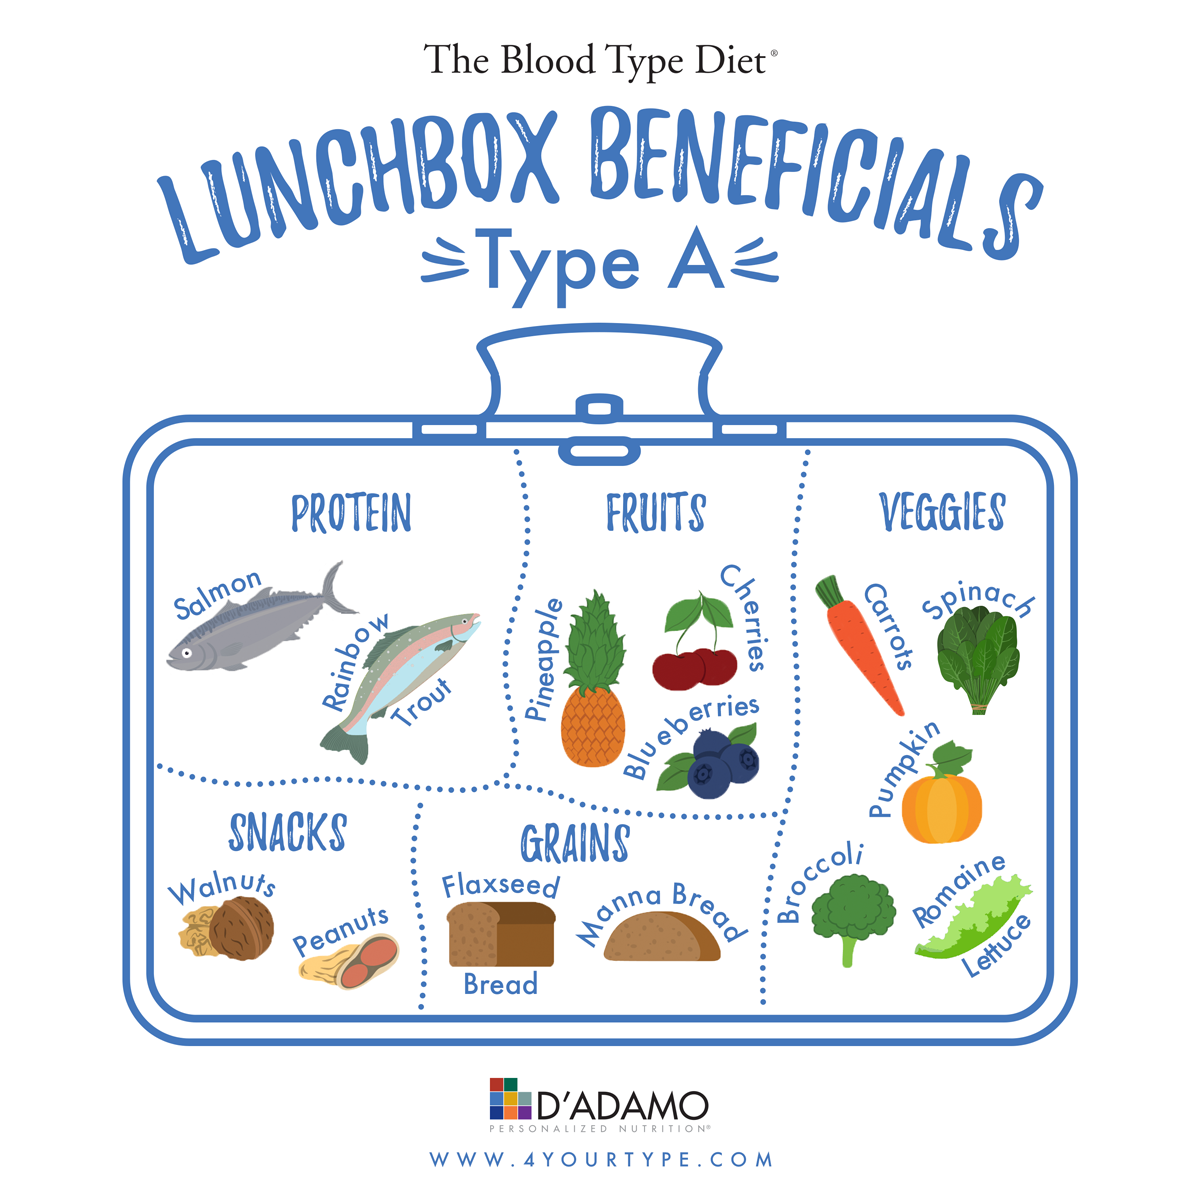 Lunchbox Beneficials Blood Type A